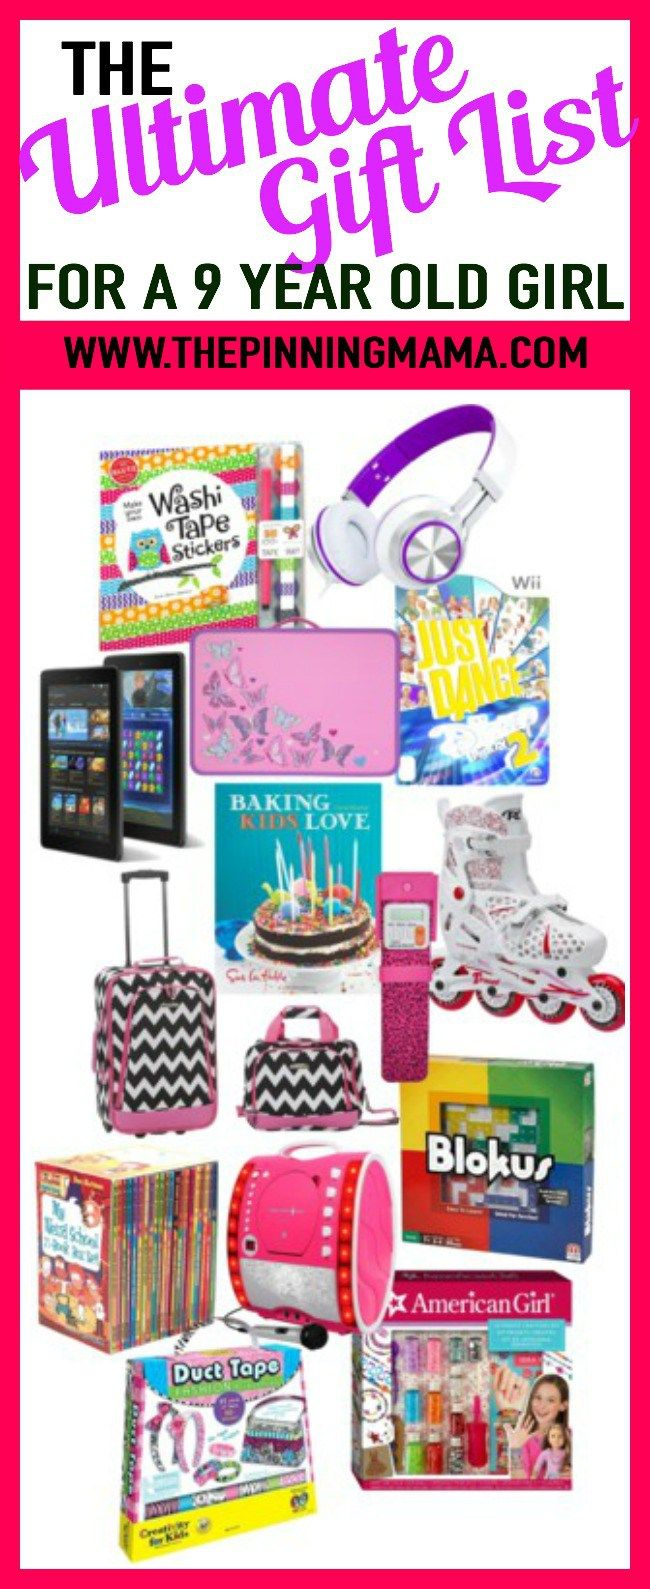 The Ultimate Gift List For A 9 Year Old Girl Birthday